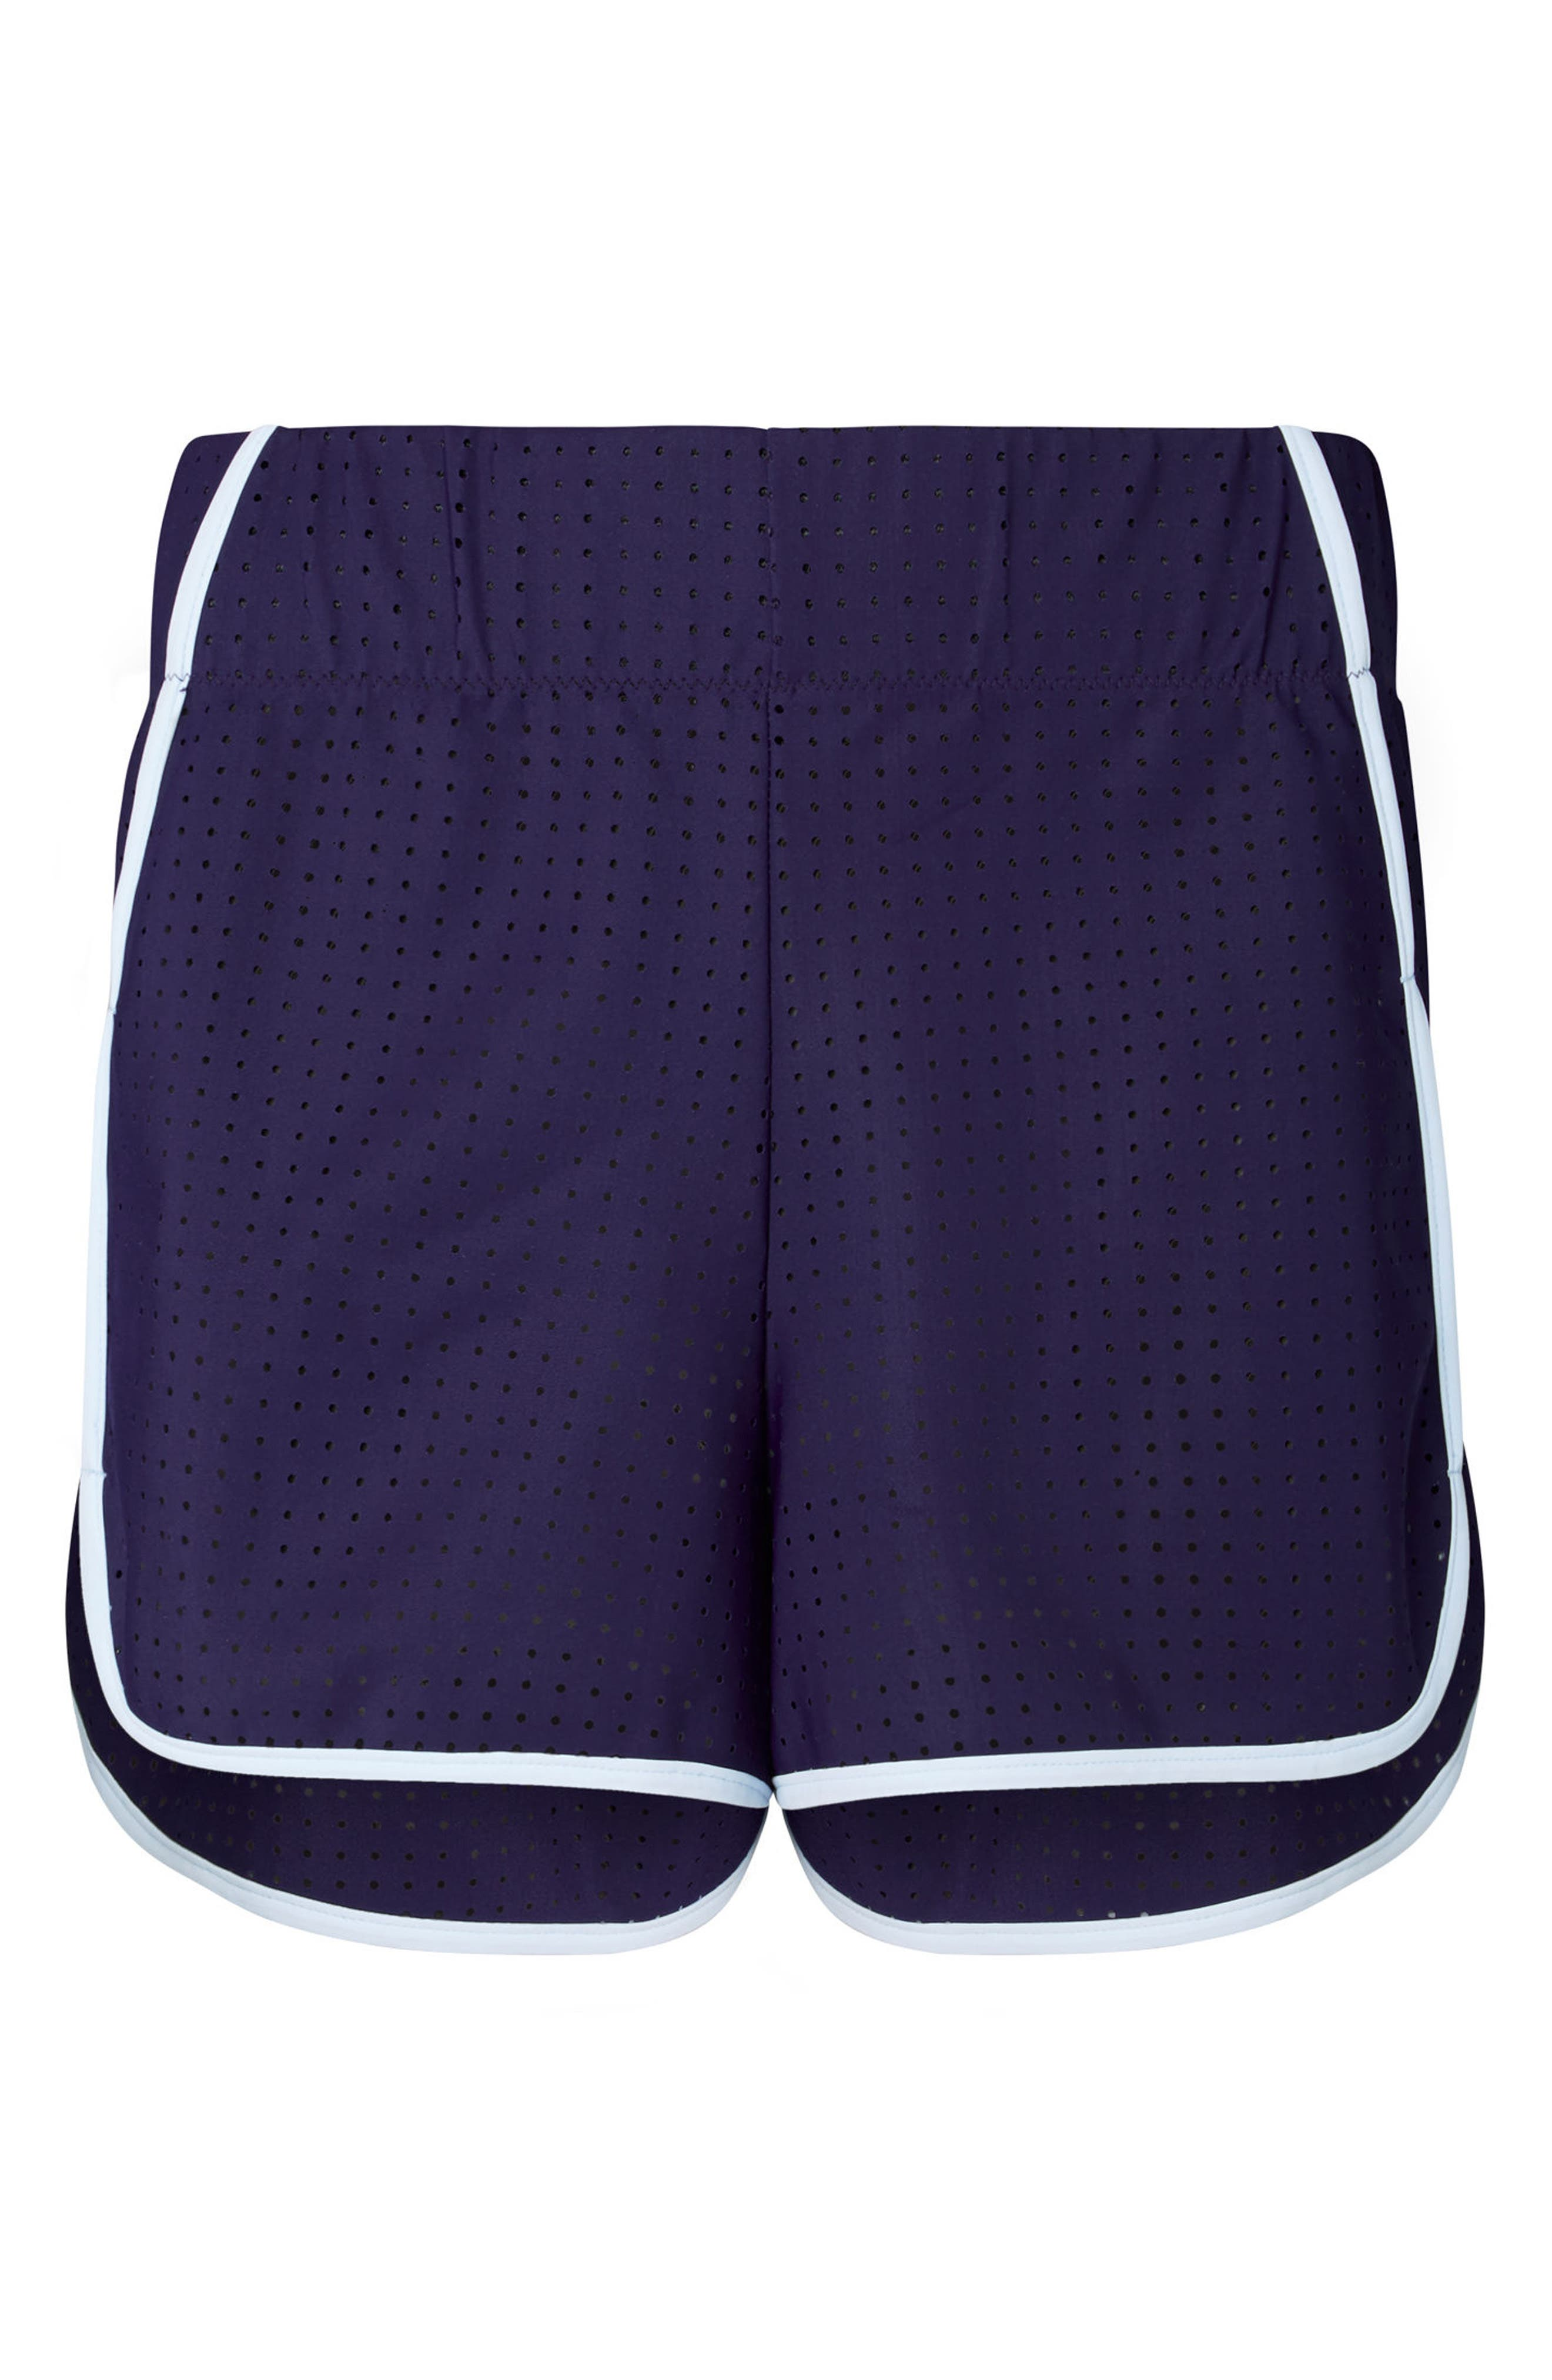 High Waist Track Shorts,                             Alternate thumbnail 5, color,